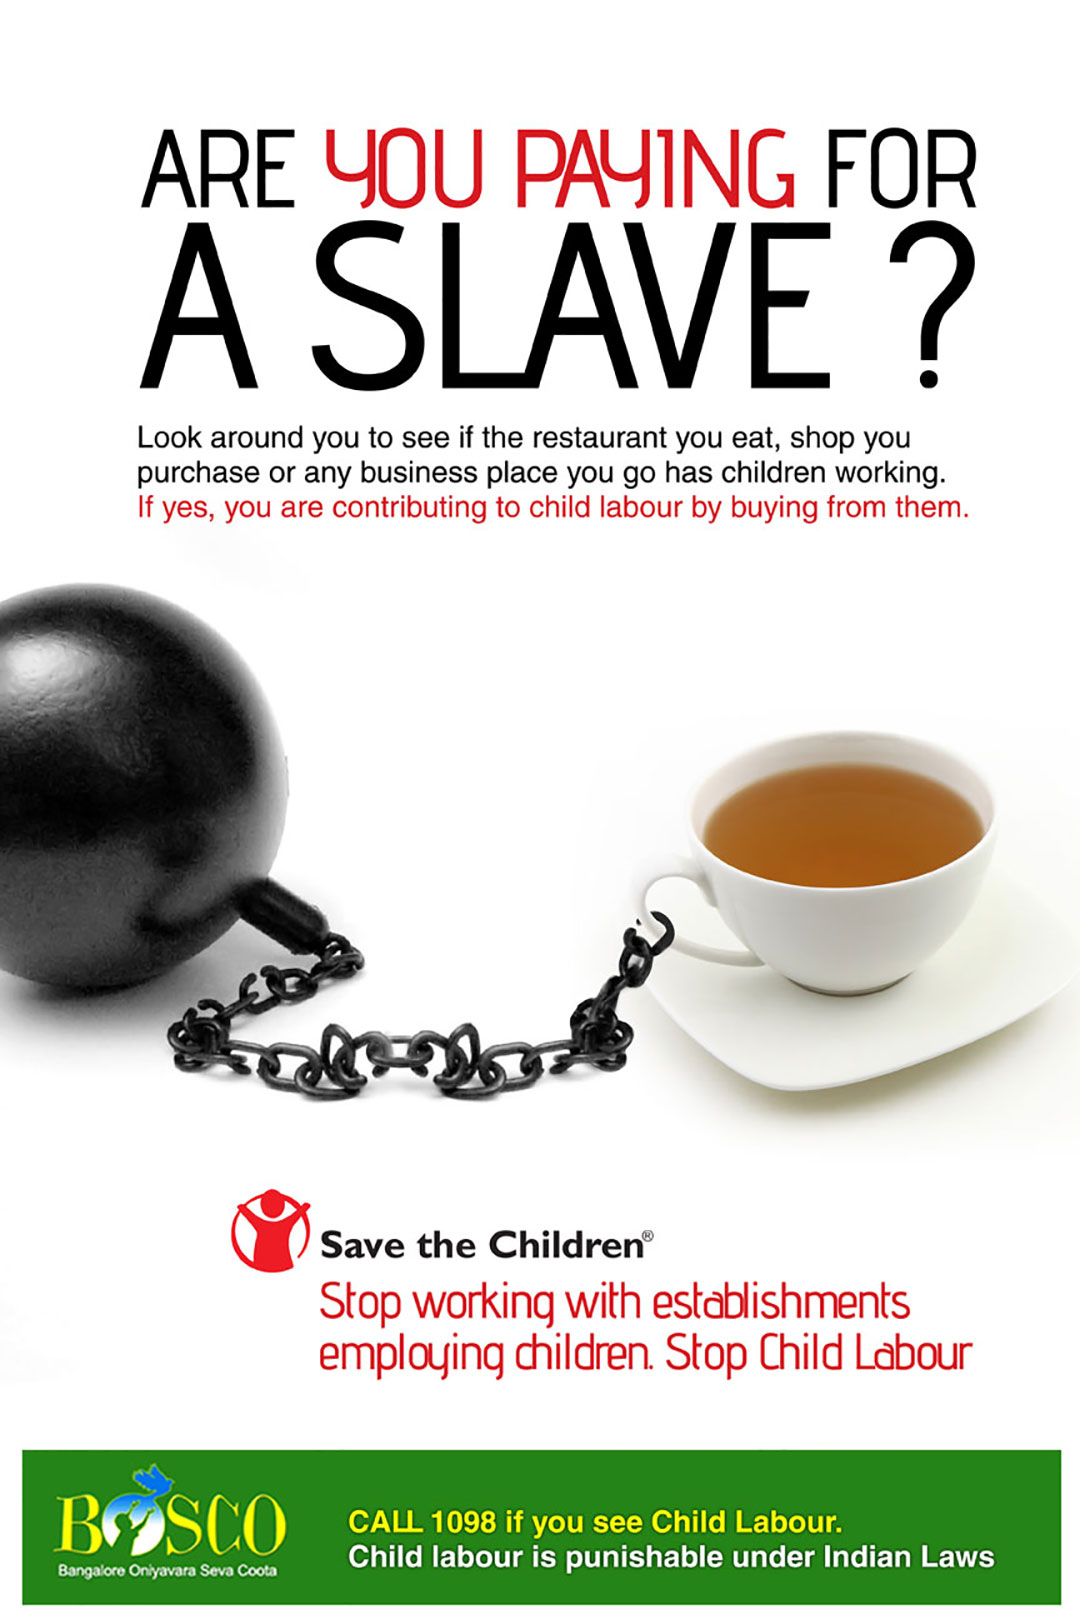 stop child labour poster design